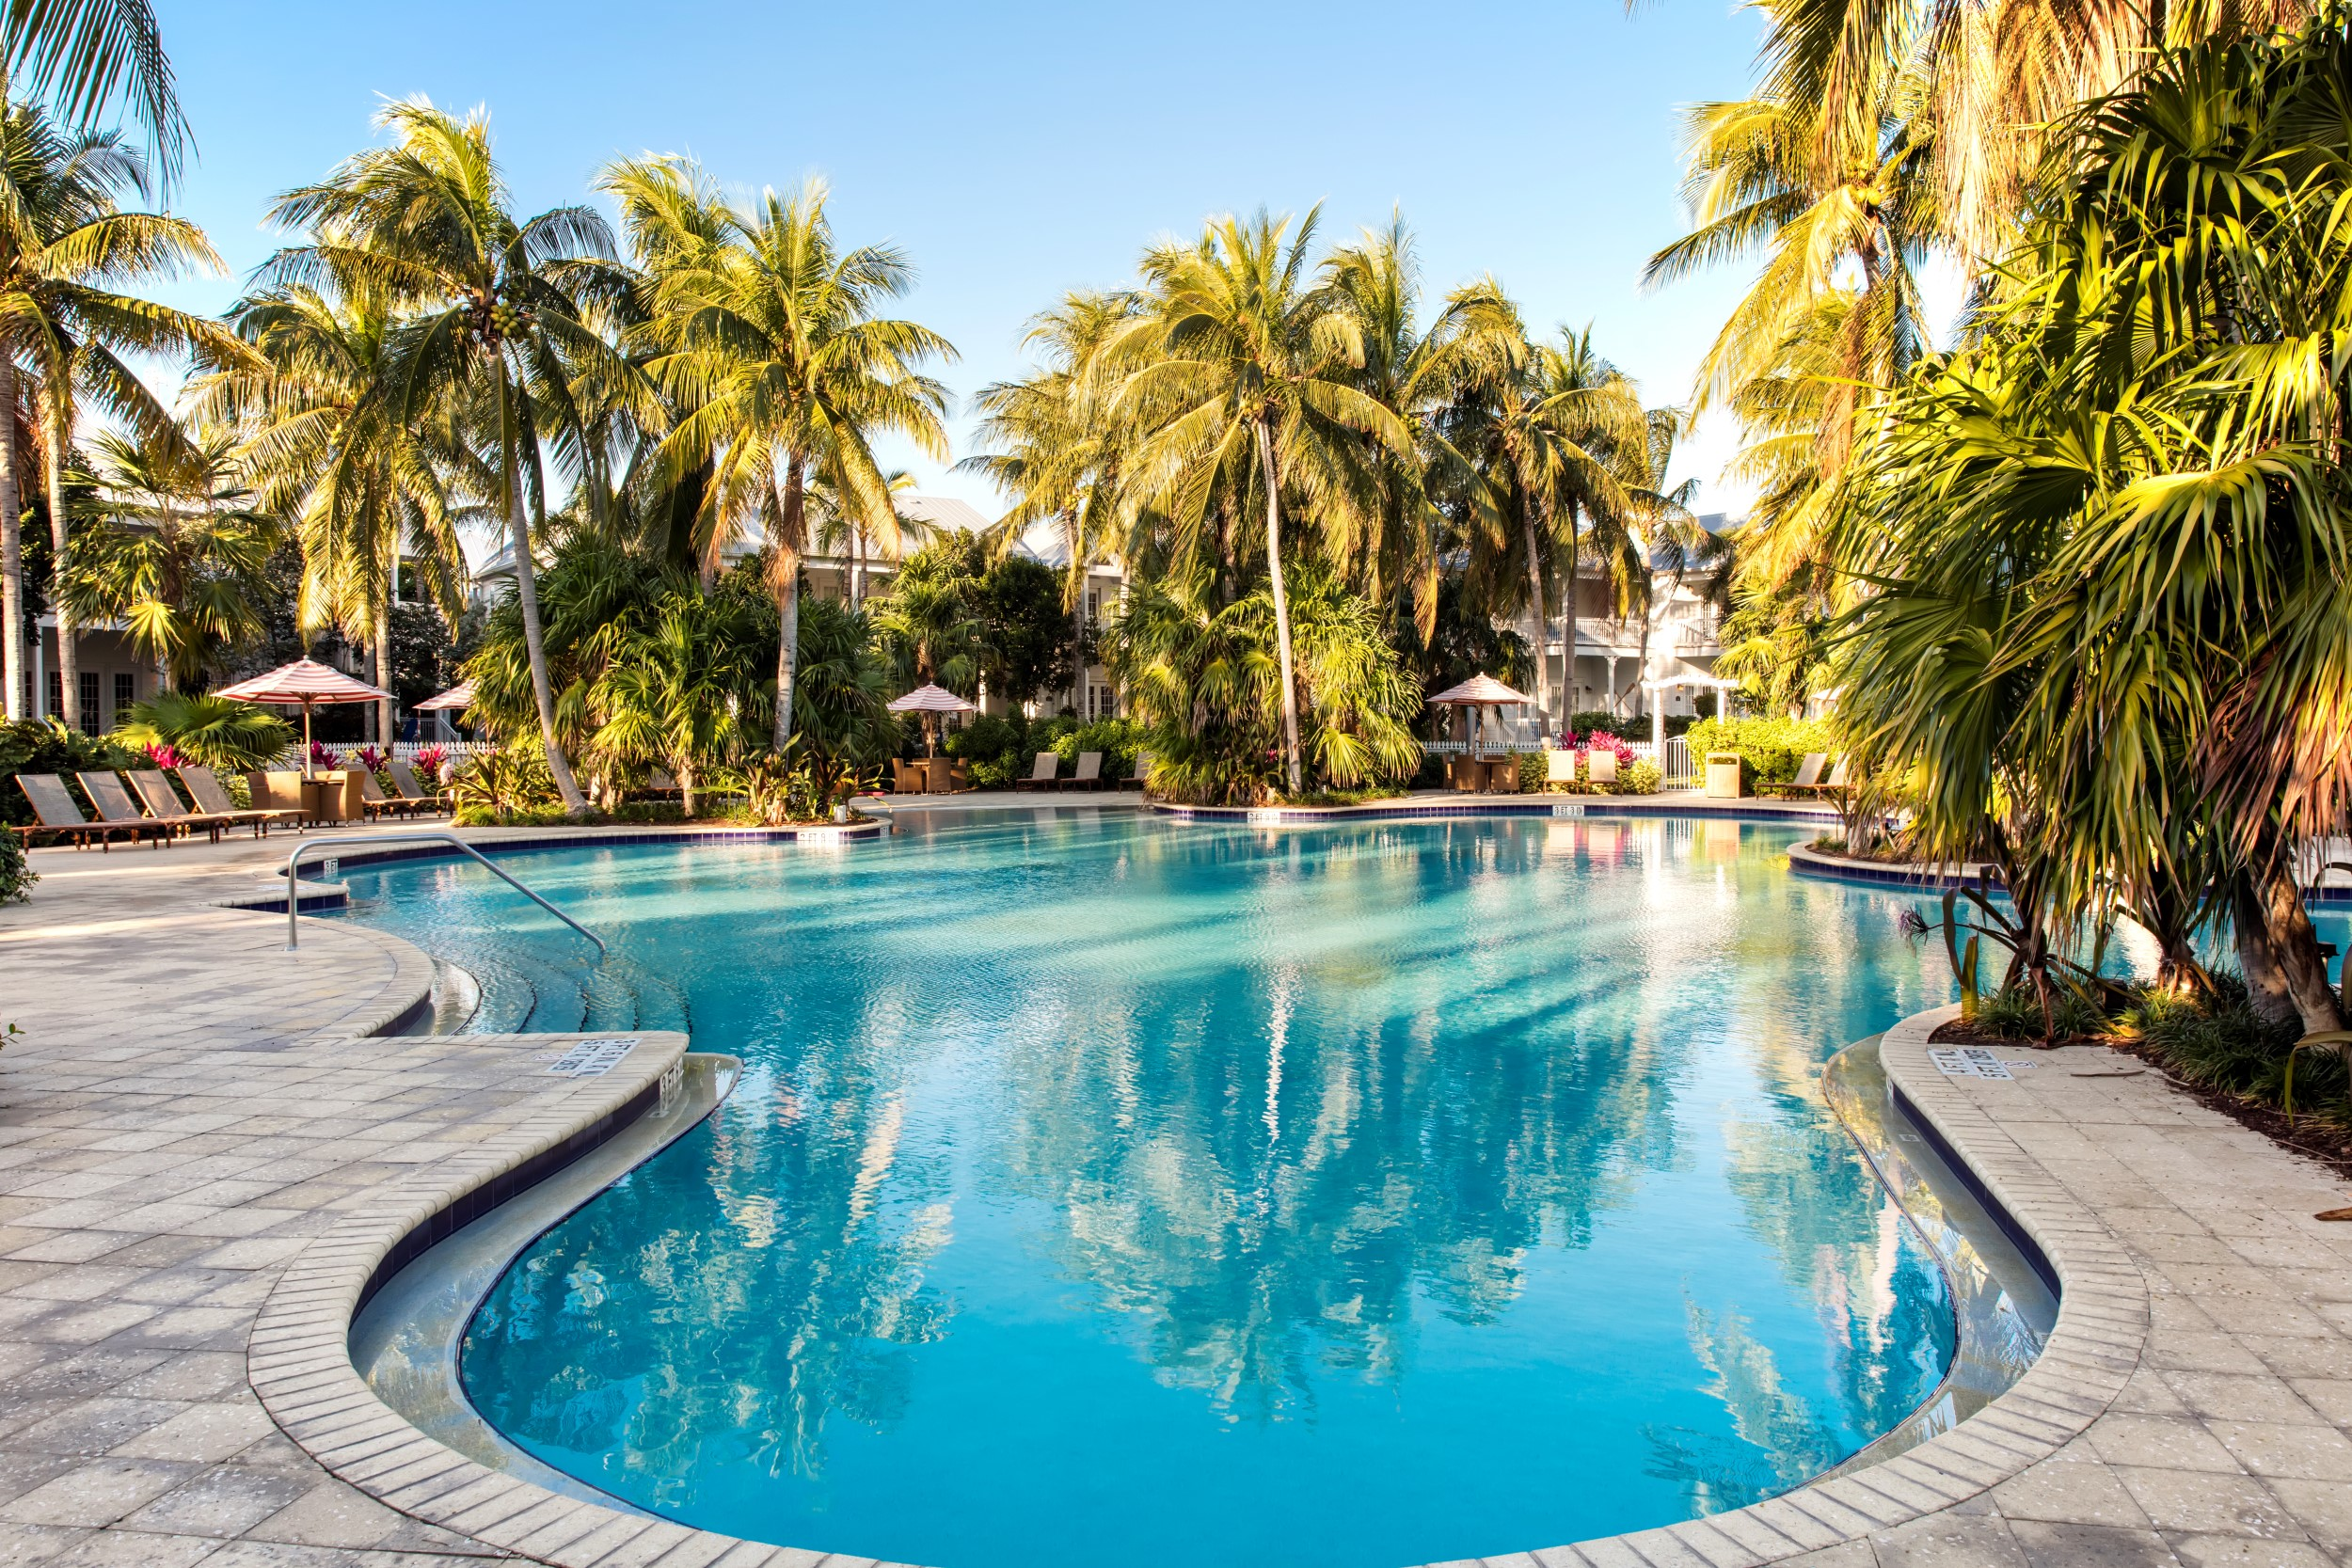 Tips For An Unforgettable Florida Keys Family Vacation Tranquility Bay Beach Resort